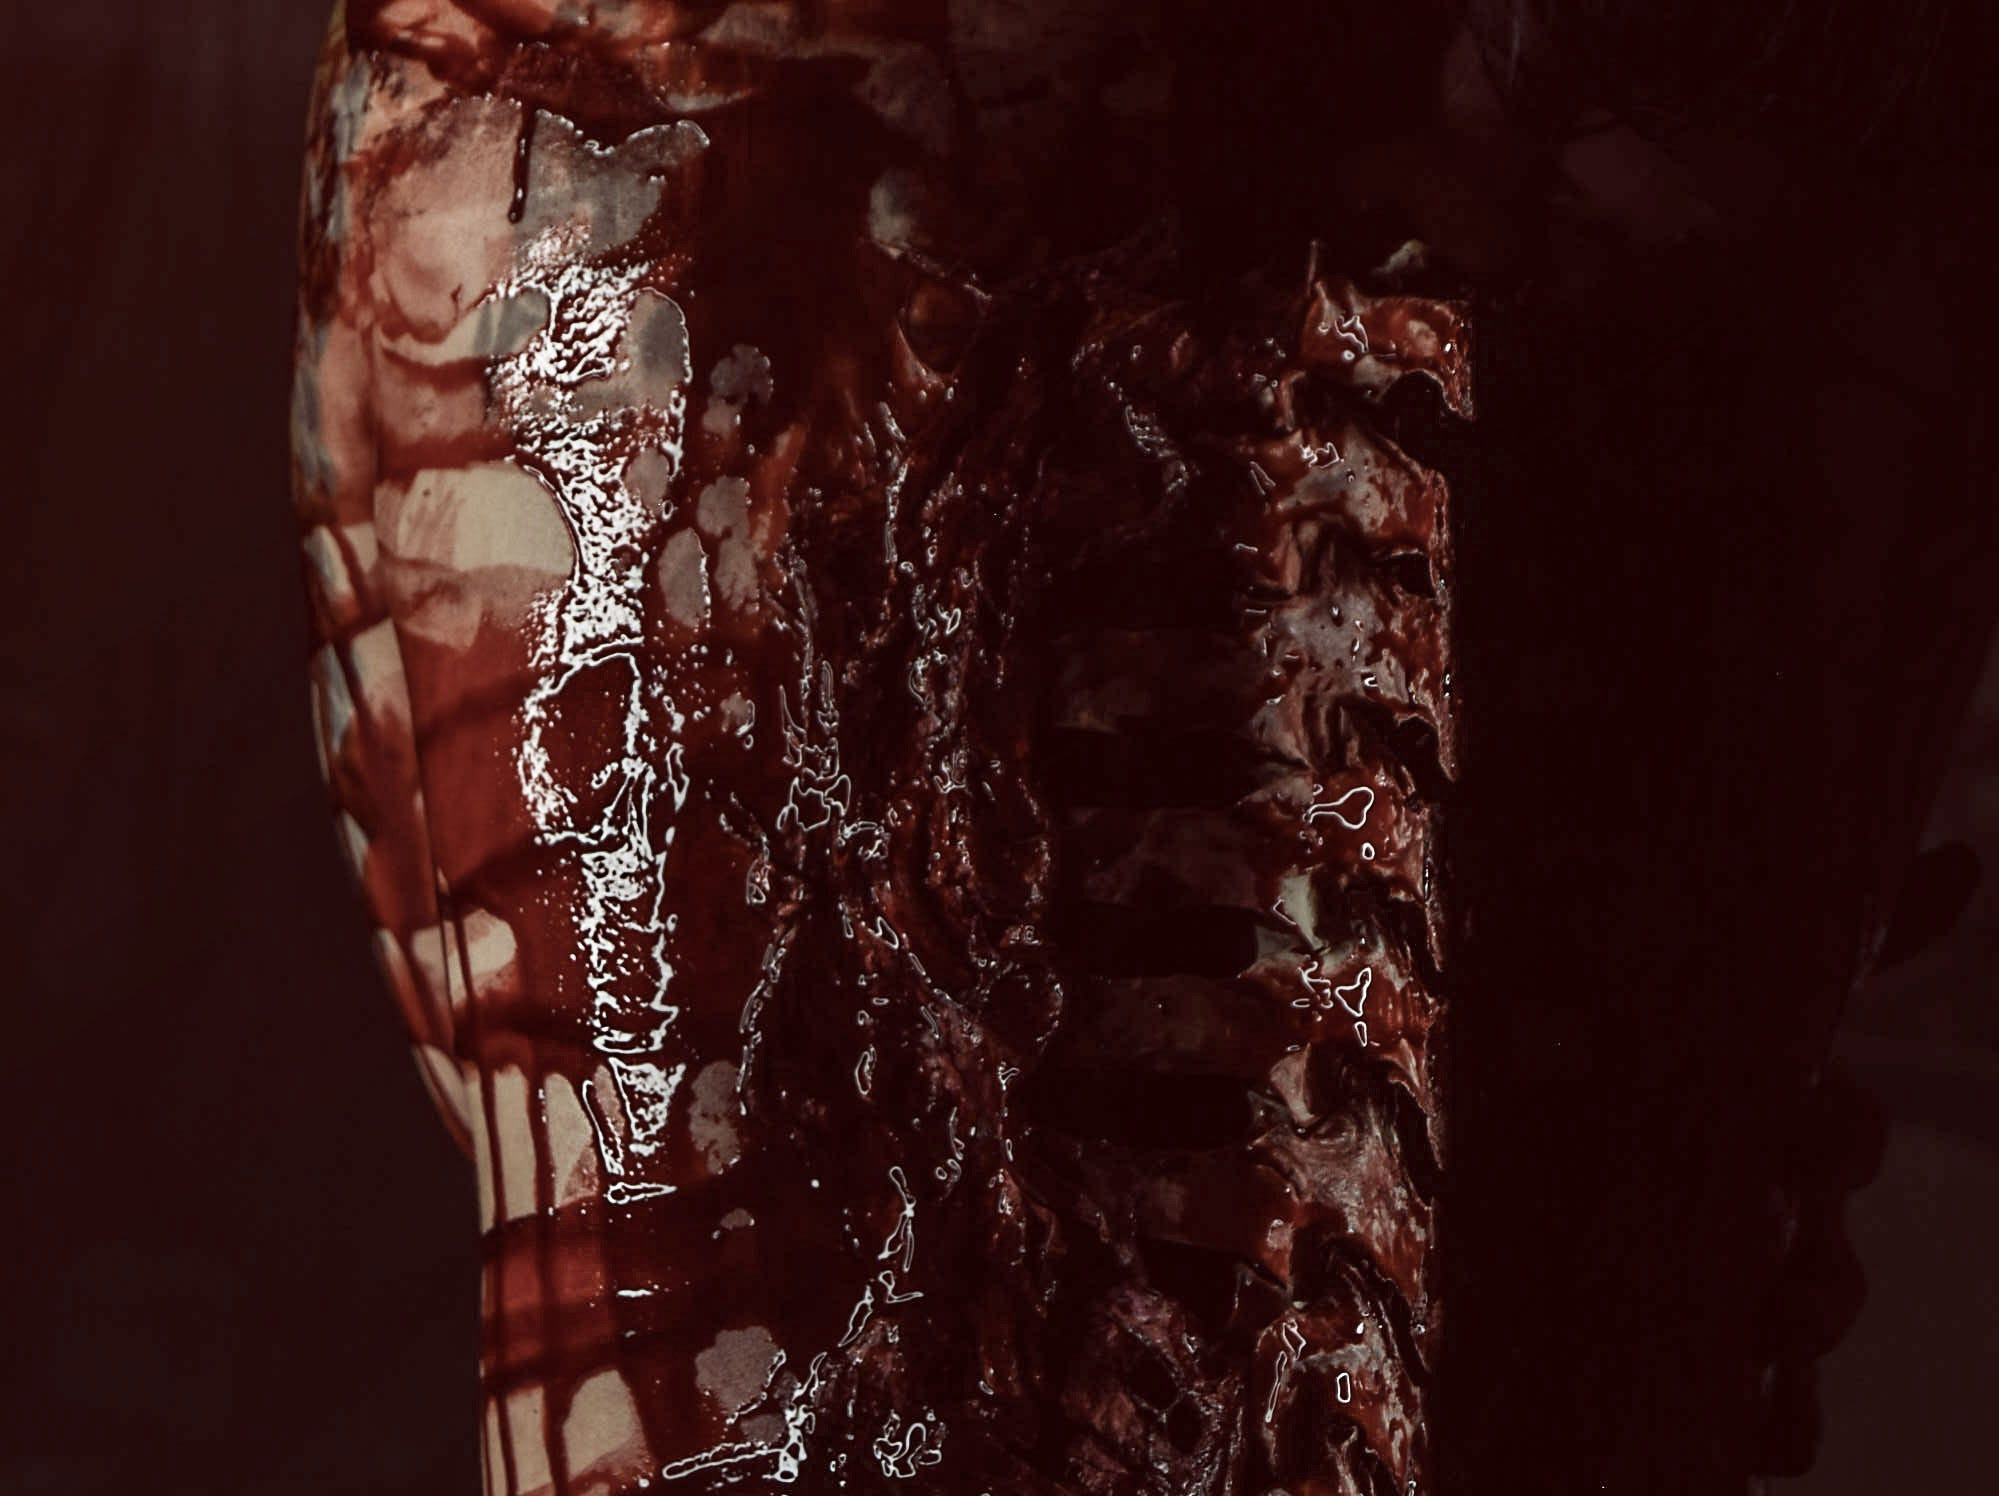 Leighann Word portrays a victim in this horror-themed photo session by Mallory Bertrand. Special effects by Ash Mac.